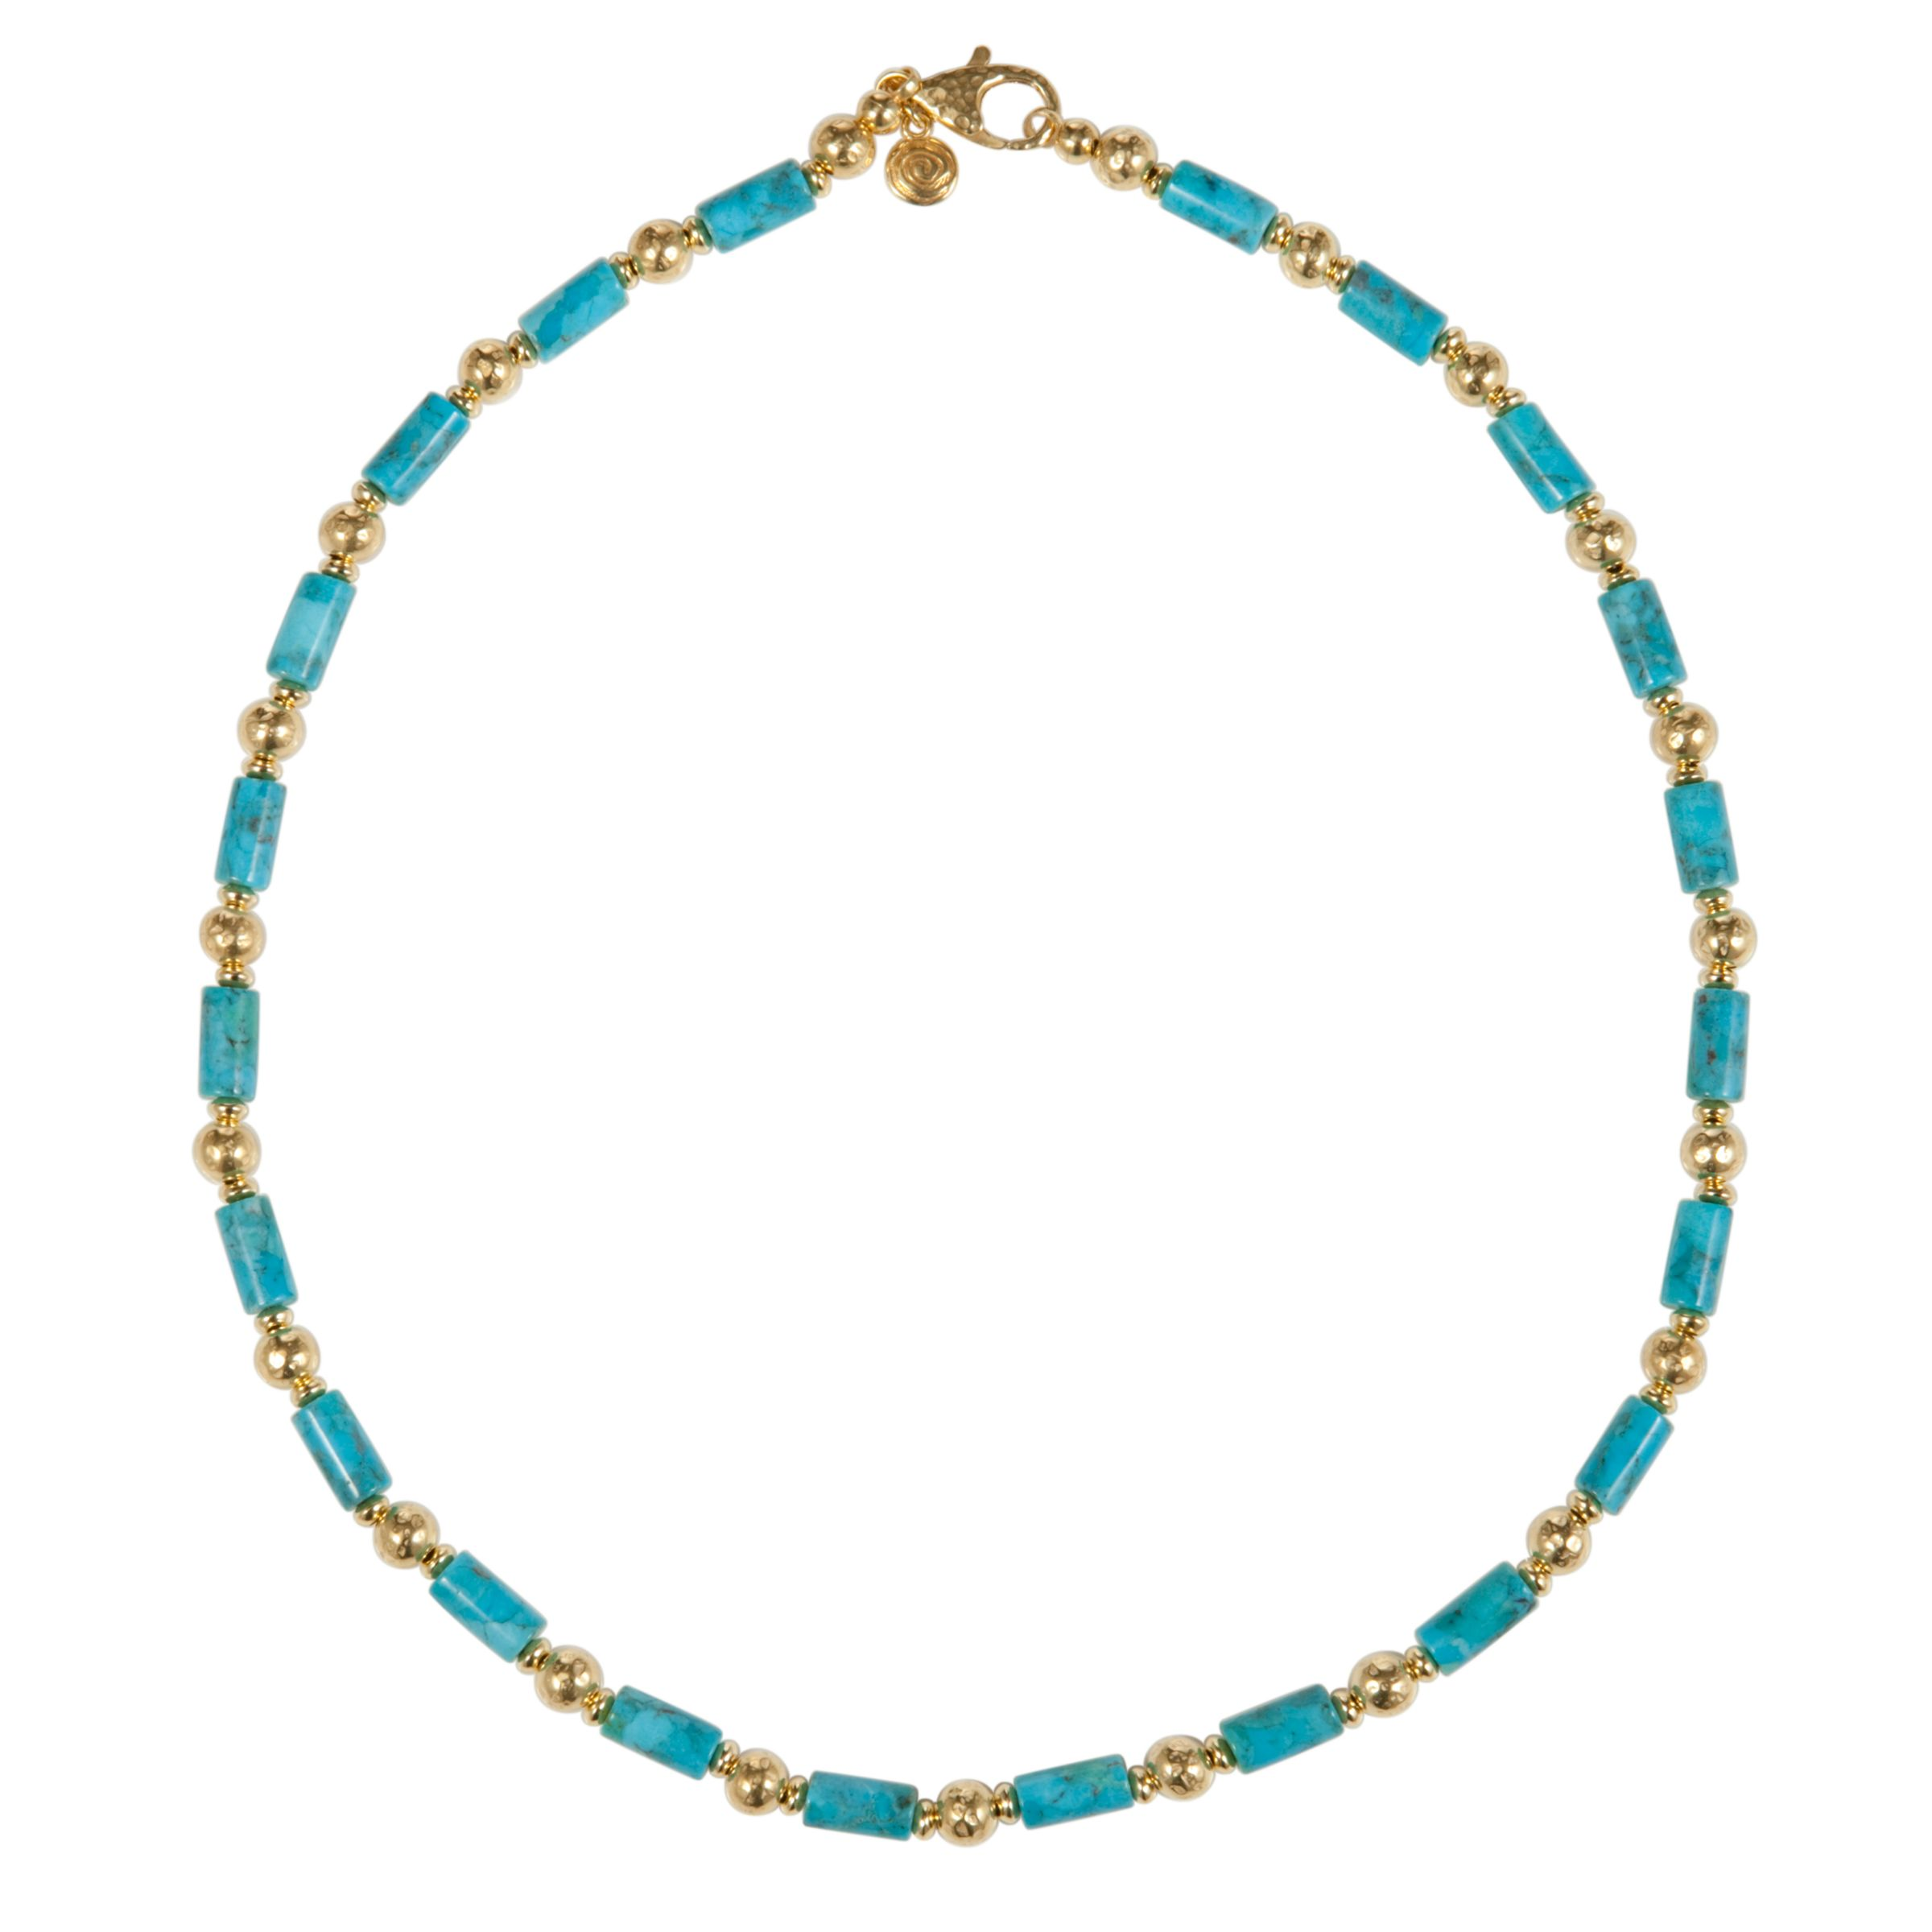 Etrusca 18ct Gold Plated Hammered Bead and Turquoise Necklace